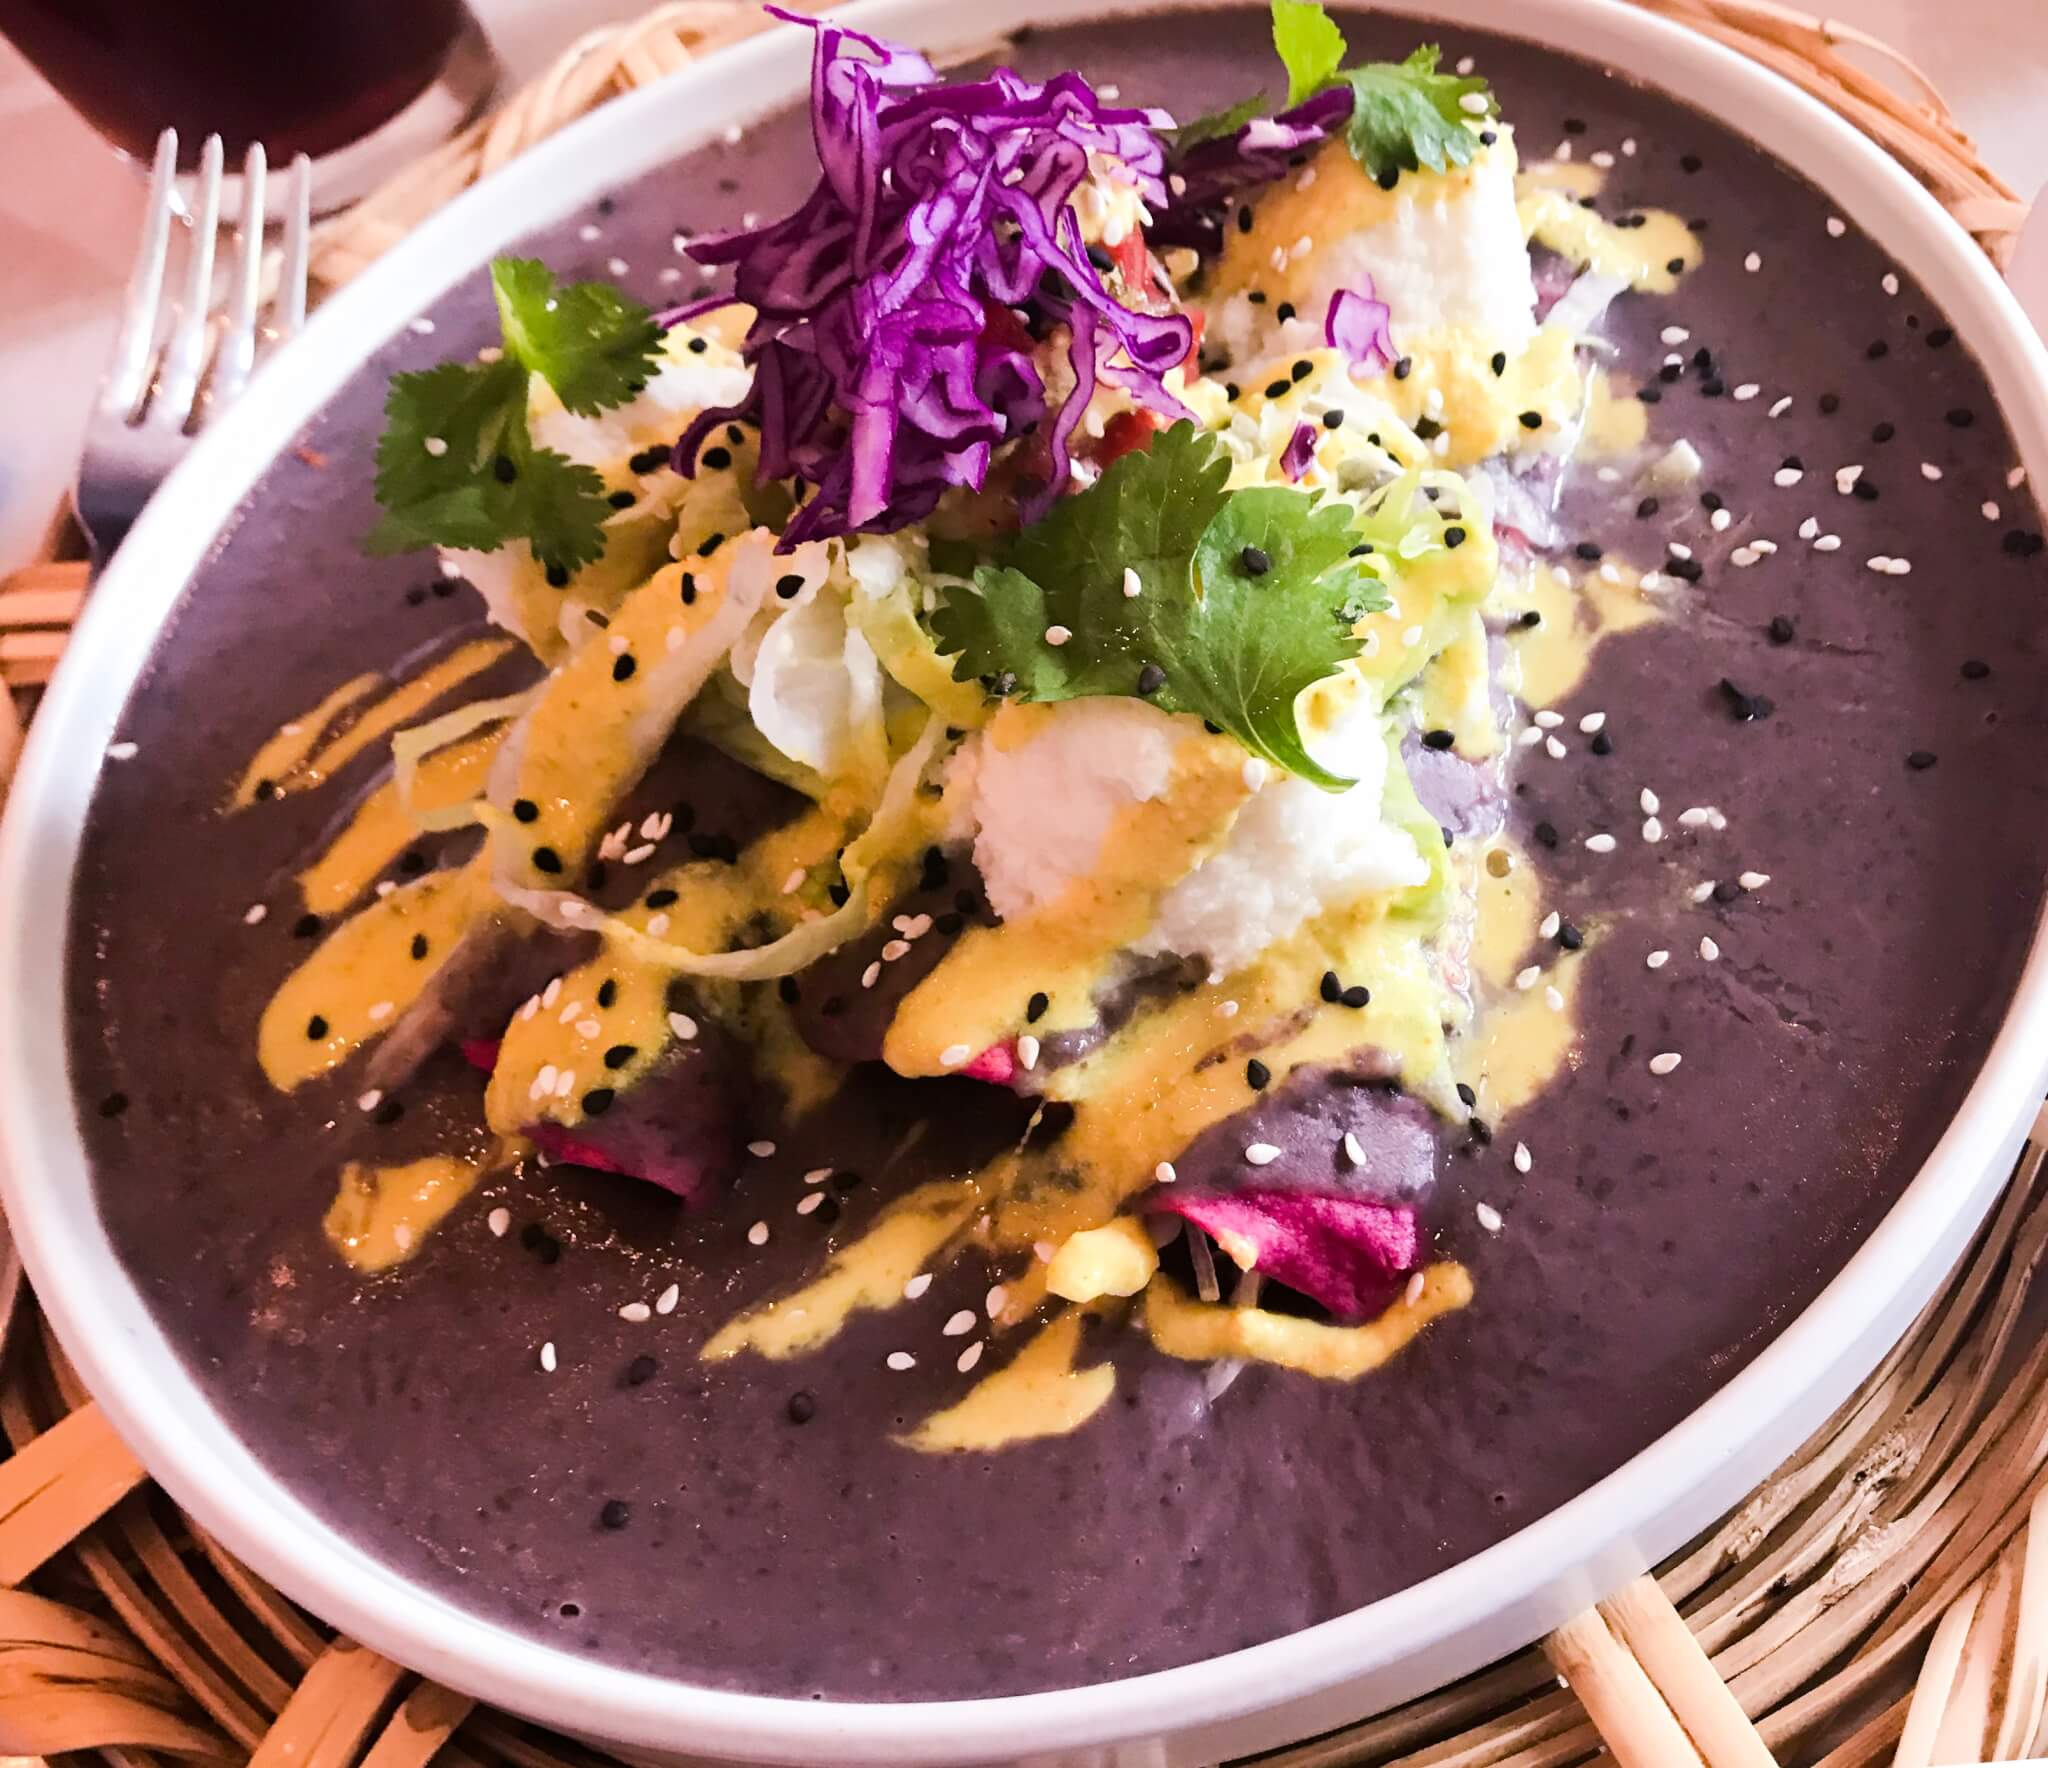 The Best Vegetarian and Vegan Restaurants in Mexico City